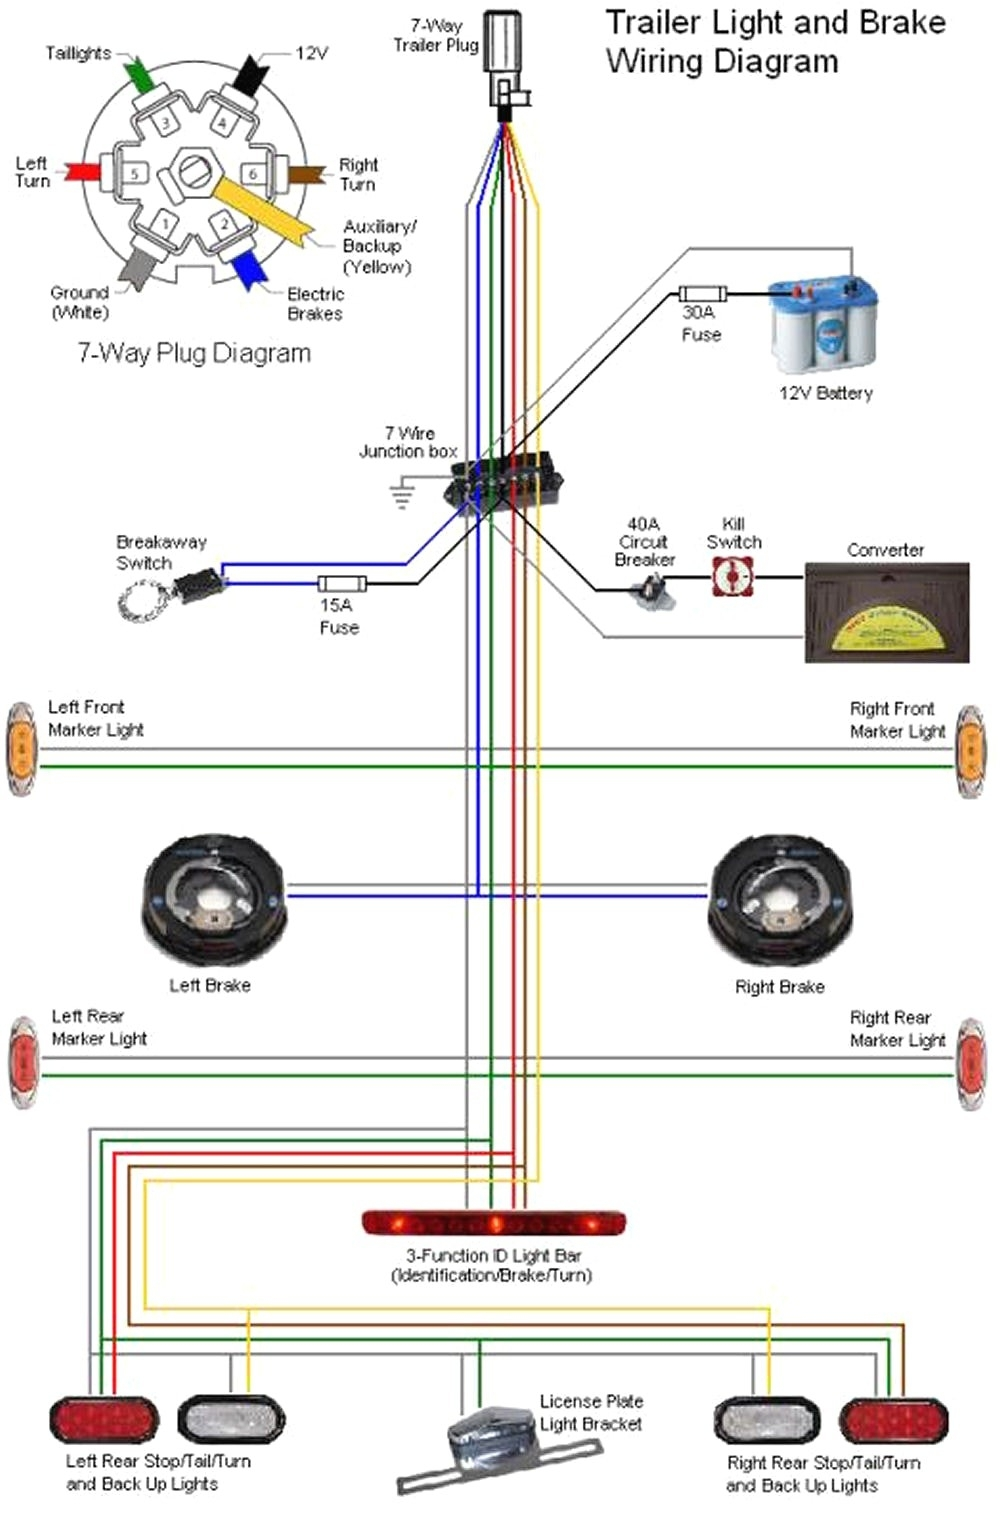 trailer breakaway switch wiring diagram Collection-7 Wire Trailer Diagram New Wiring Diagrams 7 Wire Trailer Diagram Brake Switch Wiring Diagram 18-c